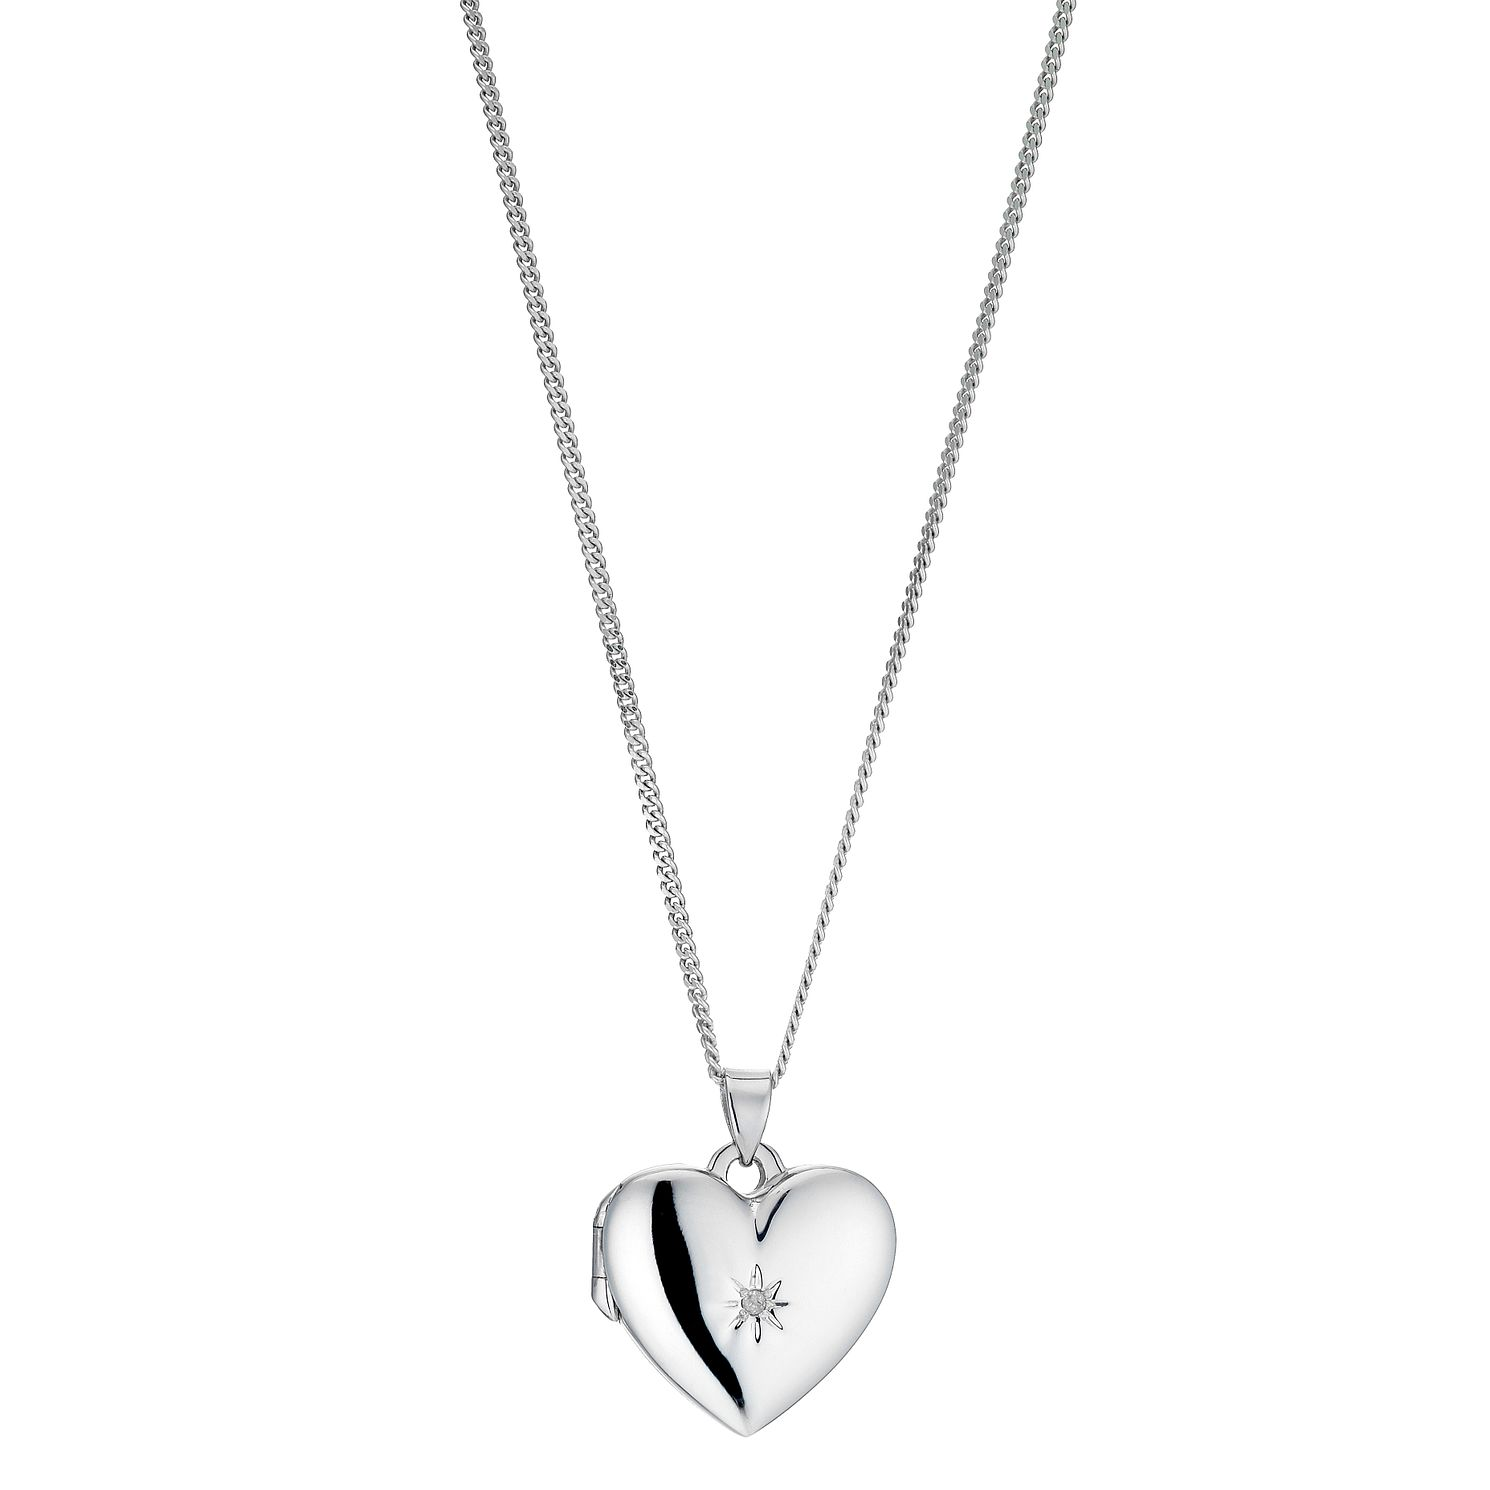 heart alloy lockets low amazon silver store pendant buy in dp women online male likes for chain india couple jewellery prices at